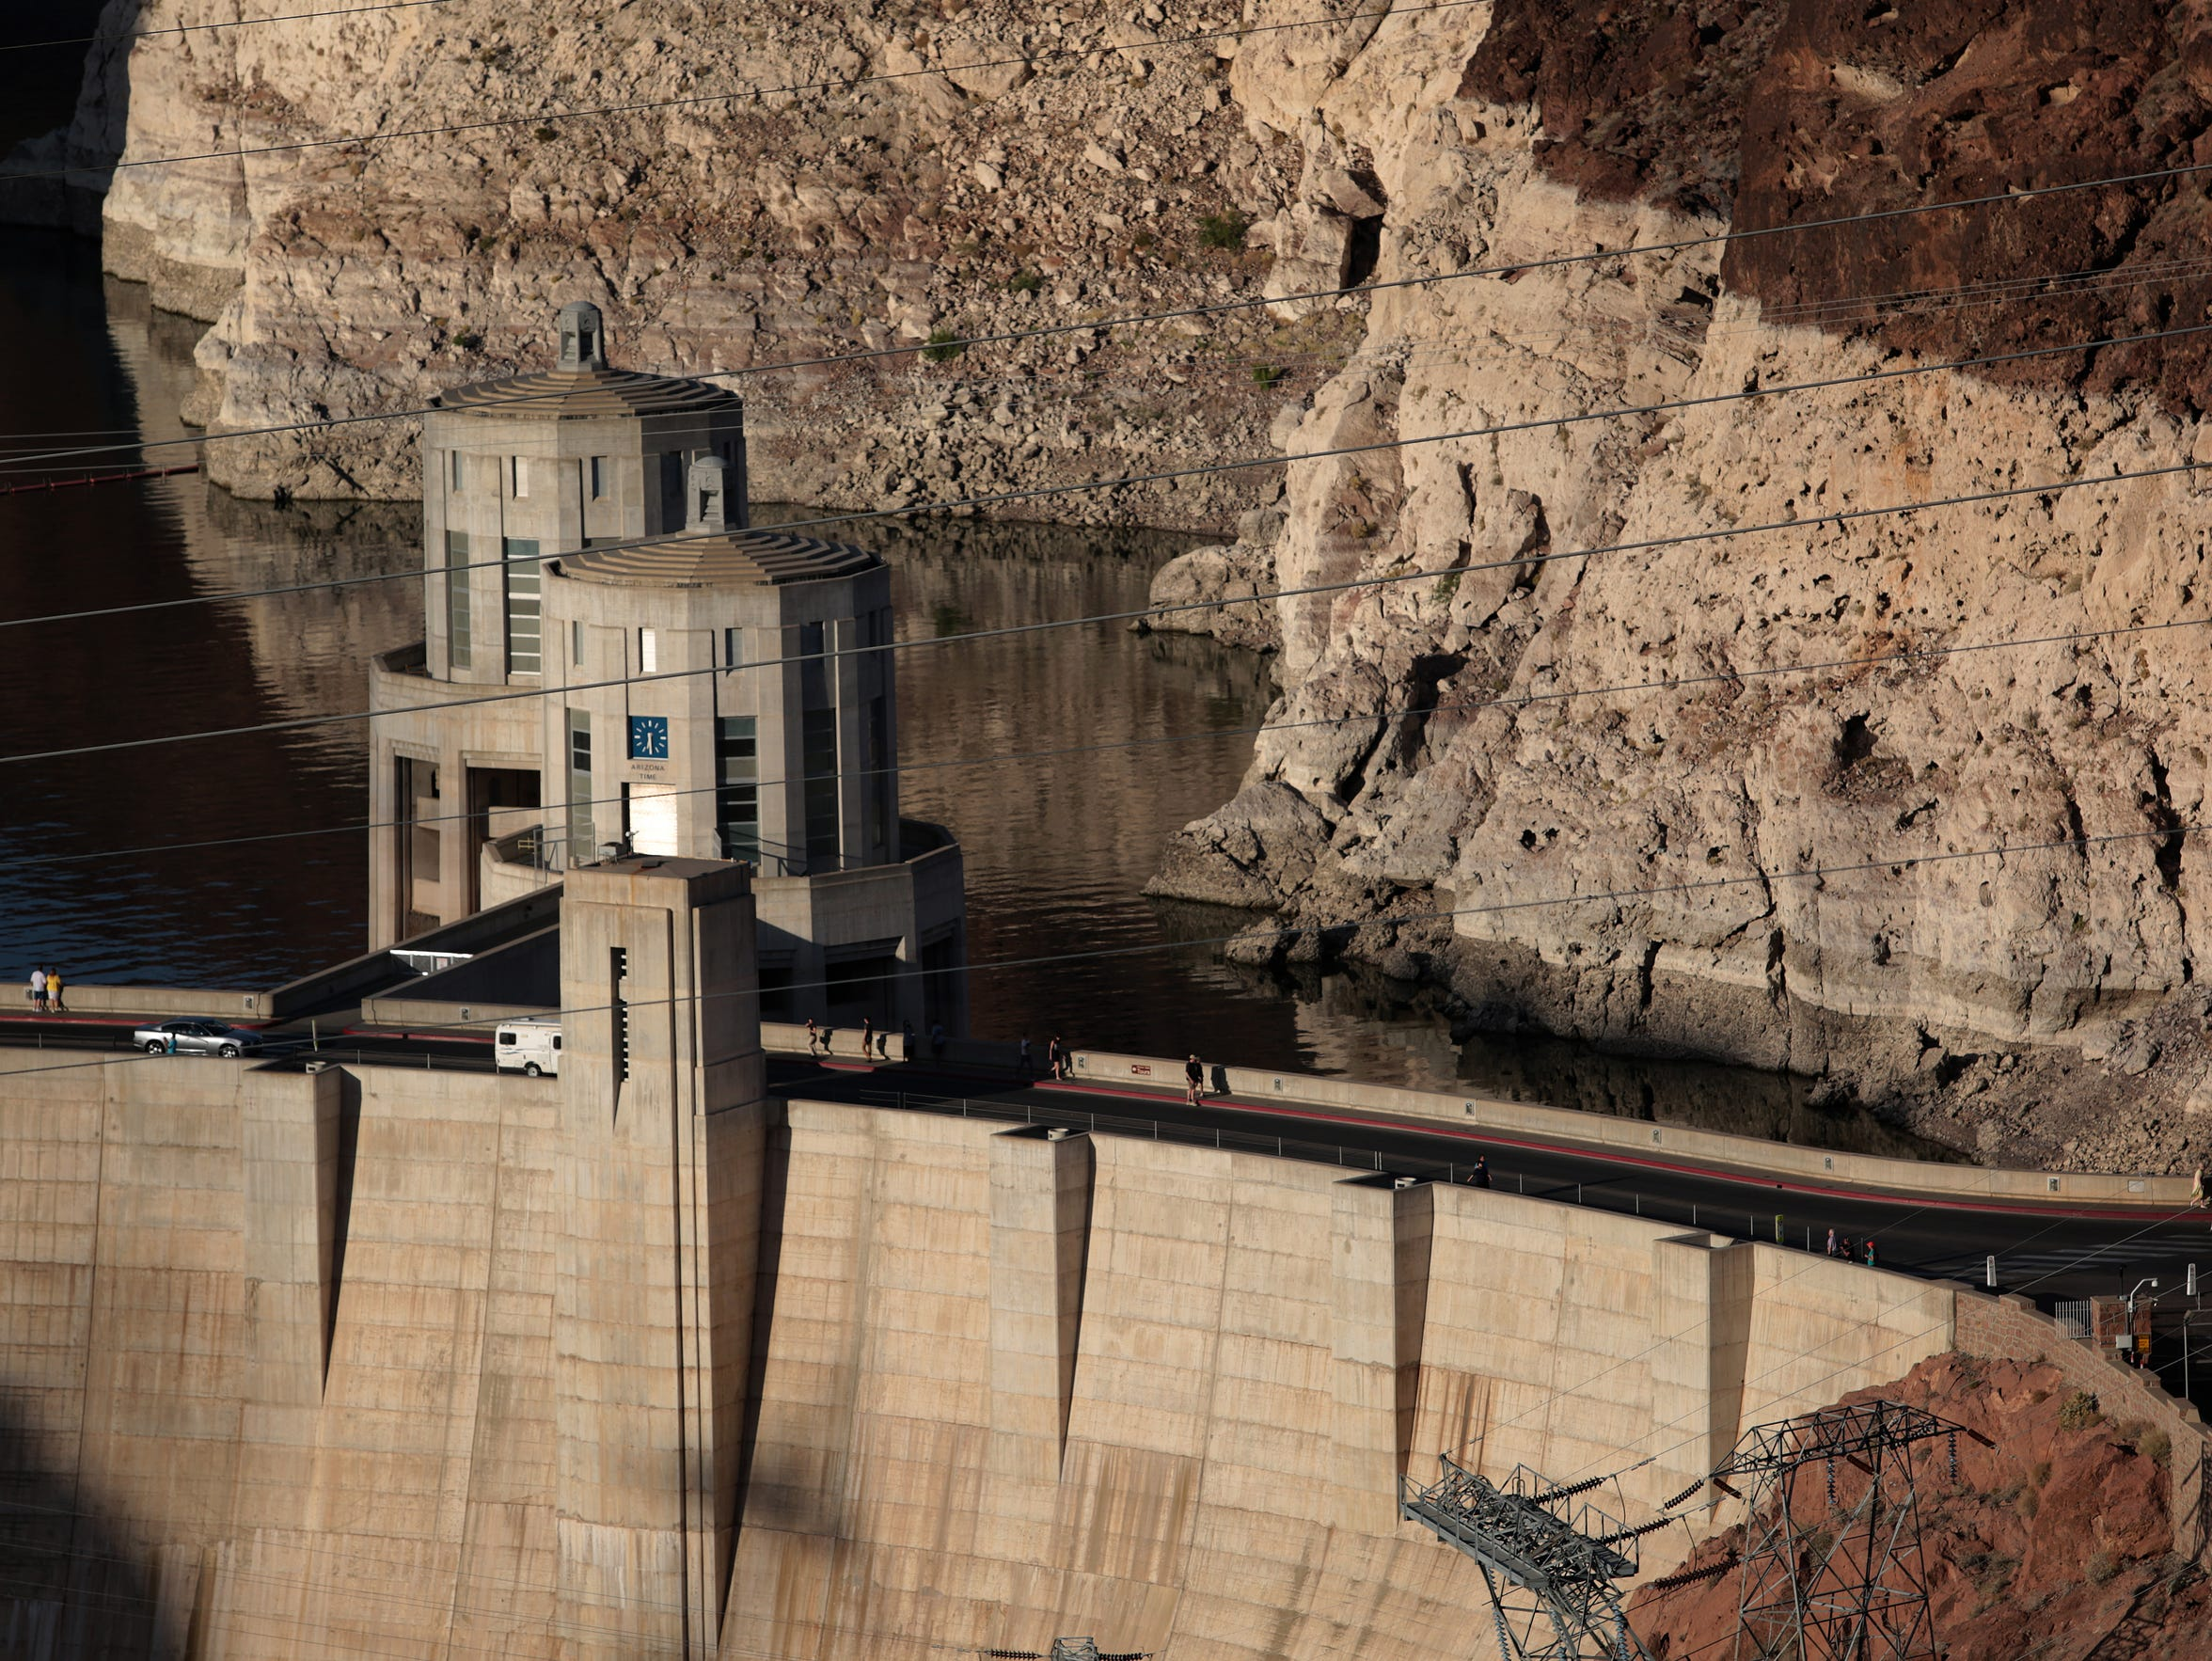 Hoover dam rises above Lake Mead, which has recently